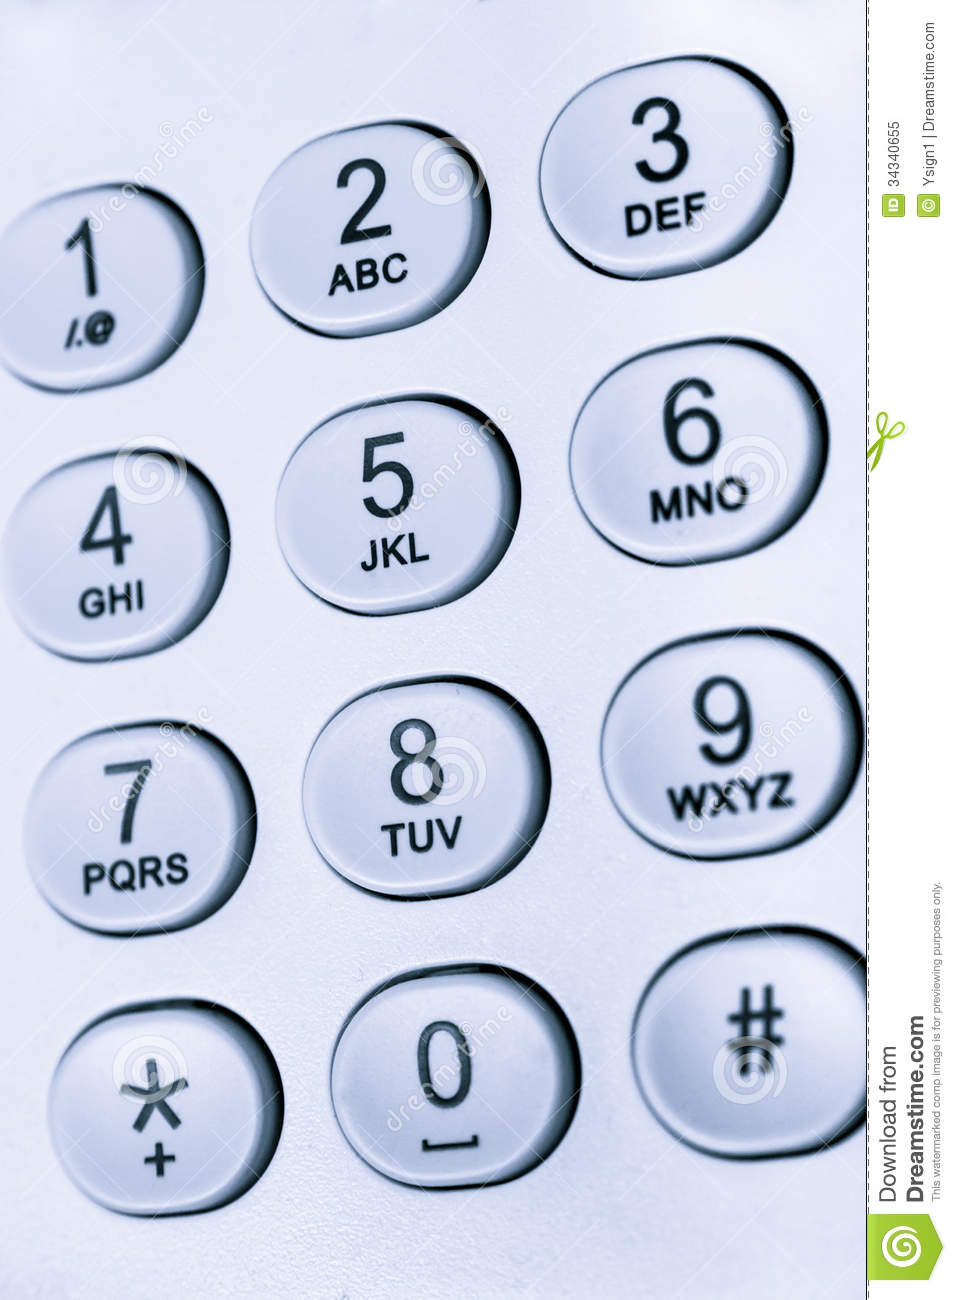 Keypad With Numbers And Letters Royalty Free Stock Photo - Image ...